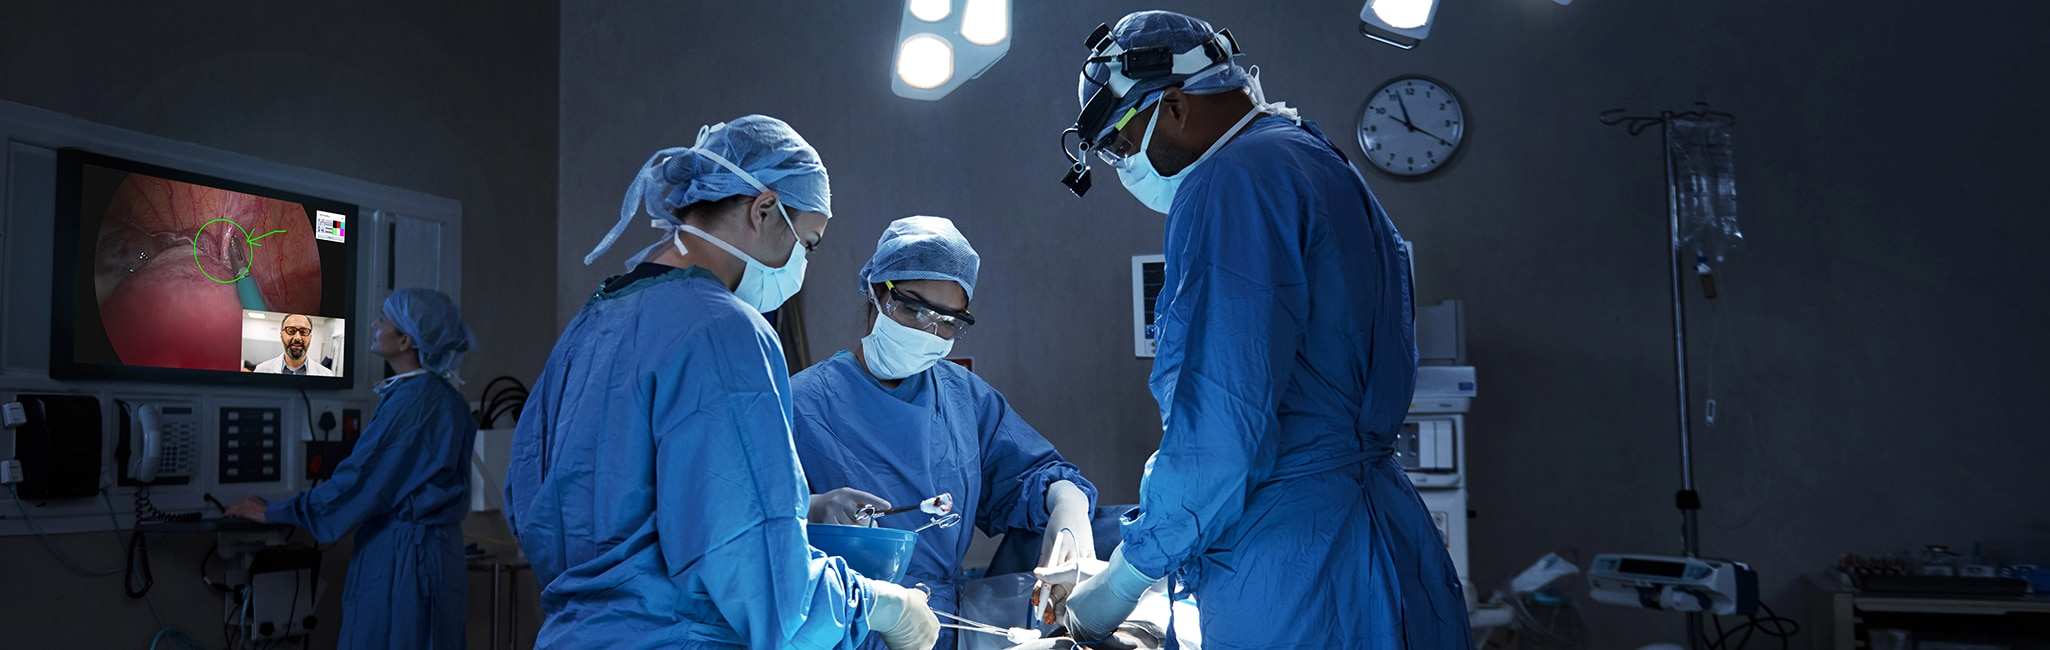 A surgeon having a remote consultation with a colleague through a wall mounted display while a surgery is in progress in the OR